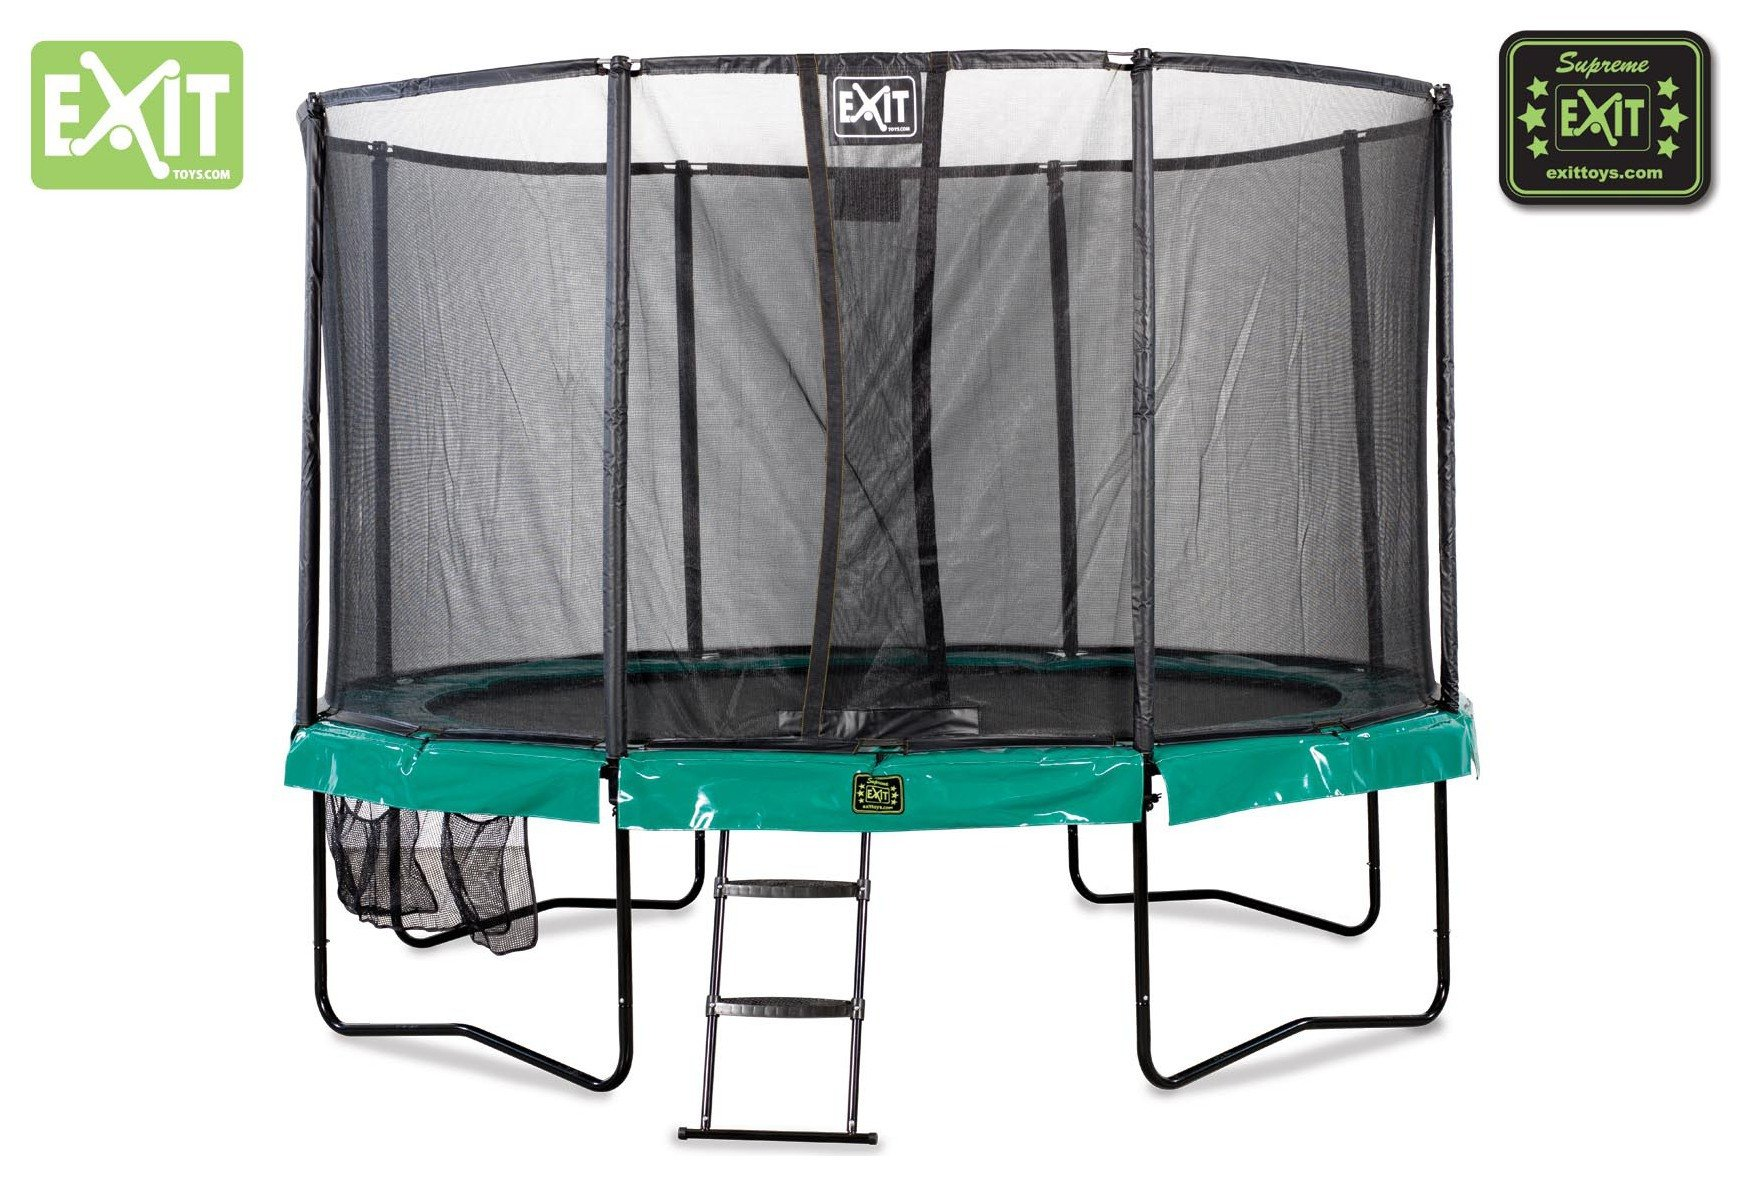 EXIT EXIT Supreme 12FT Trampoline - Dark Green